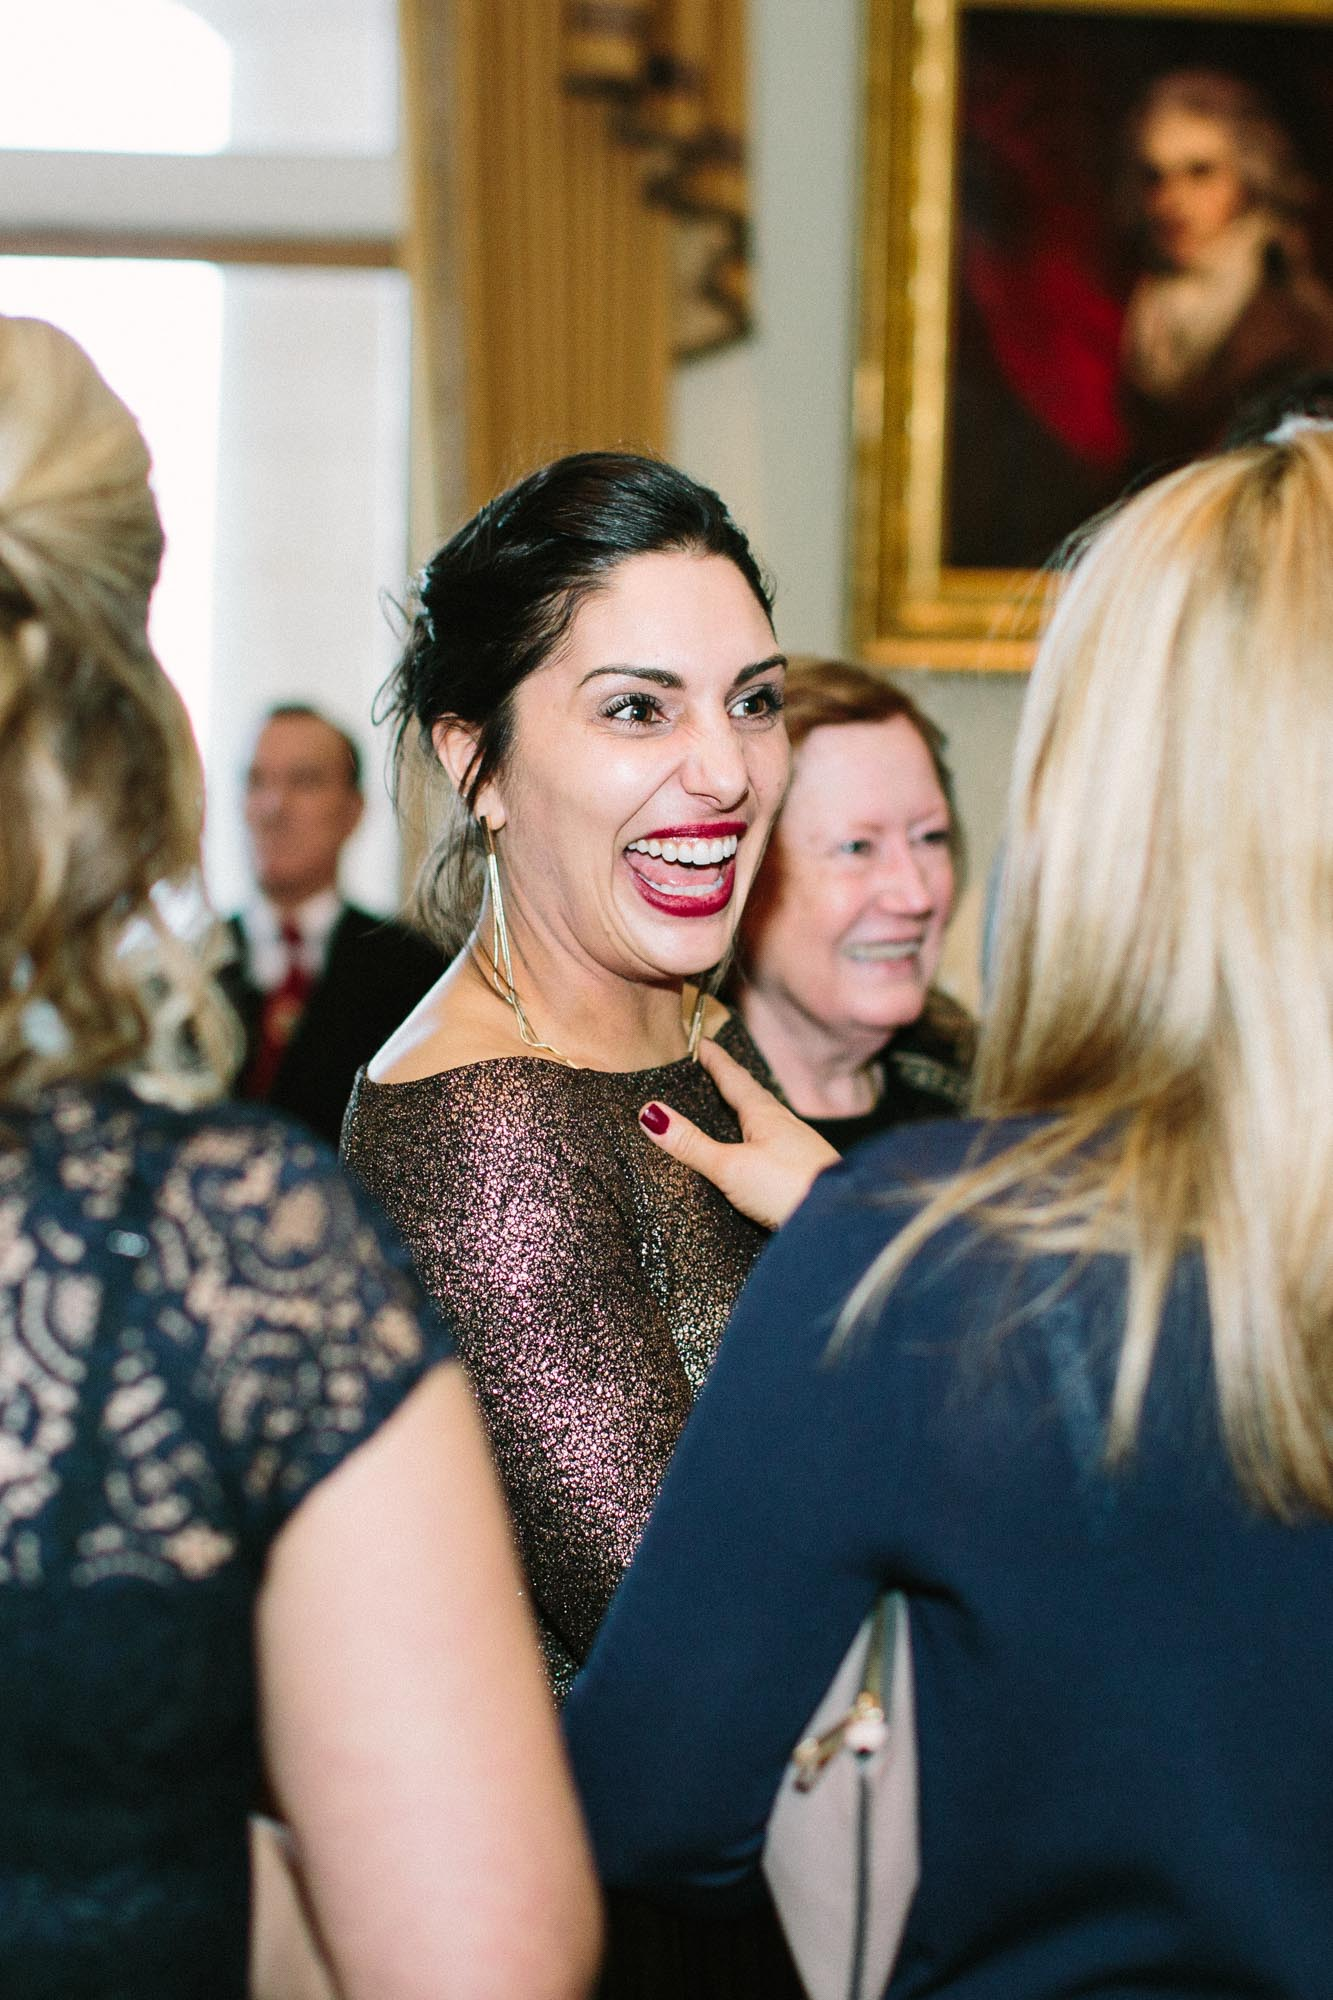 Wedding guests laughing during reception at Goodwood House wedding